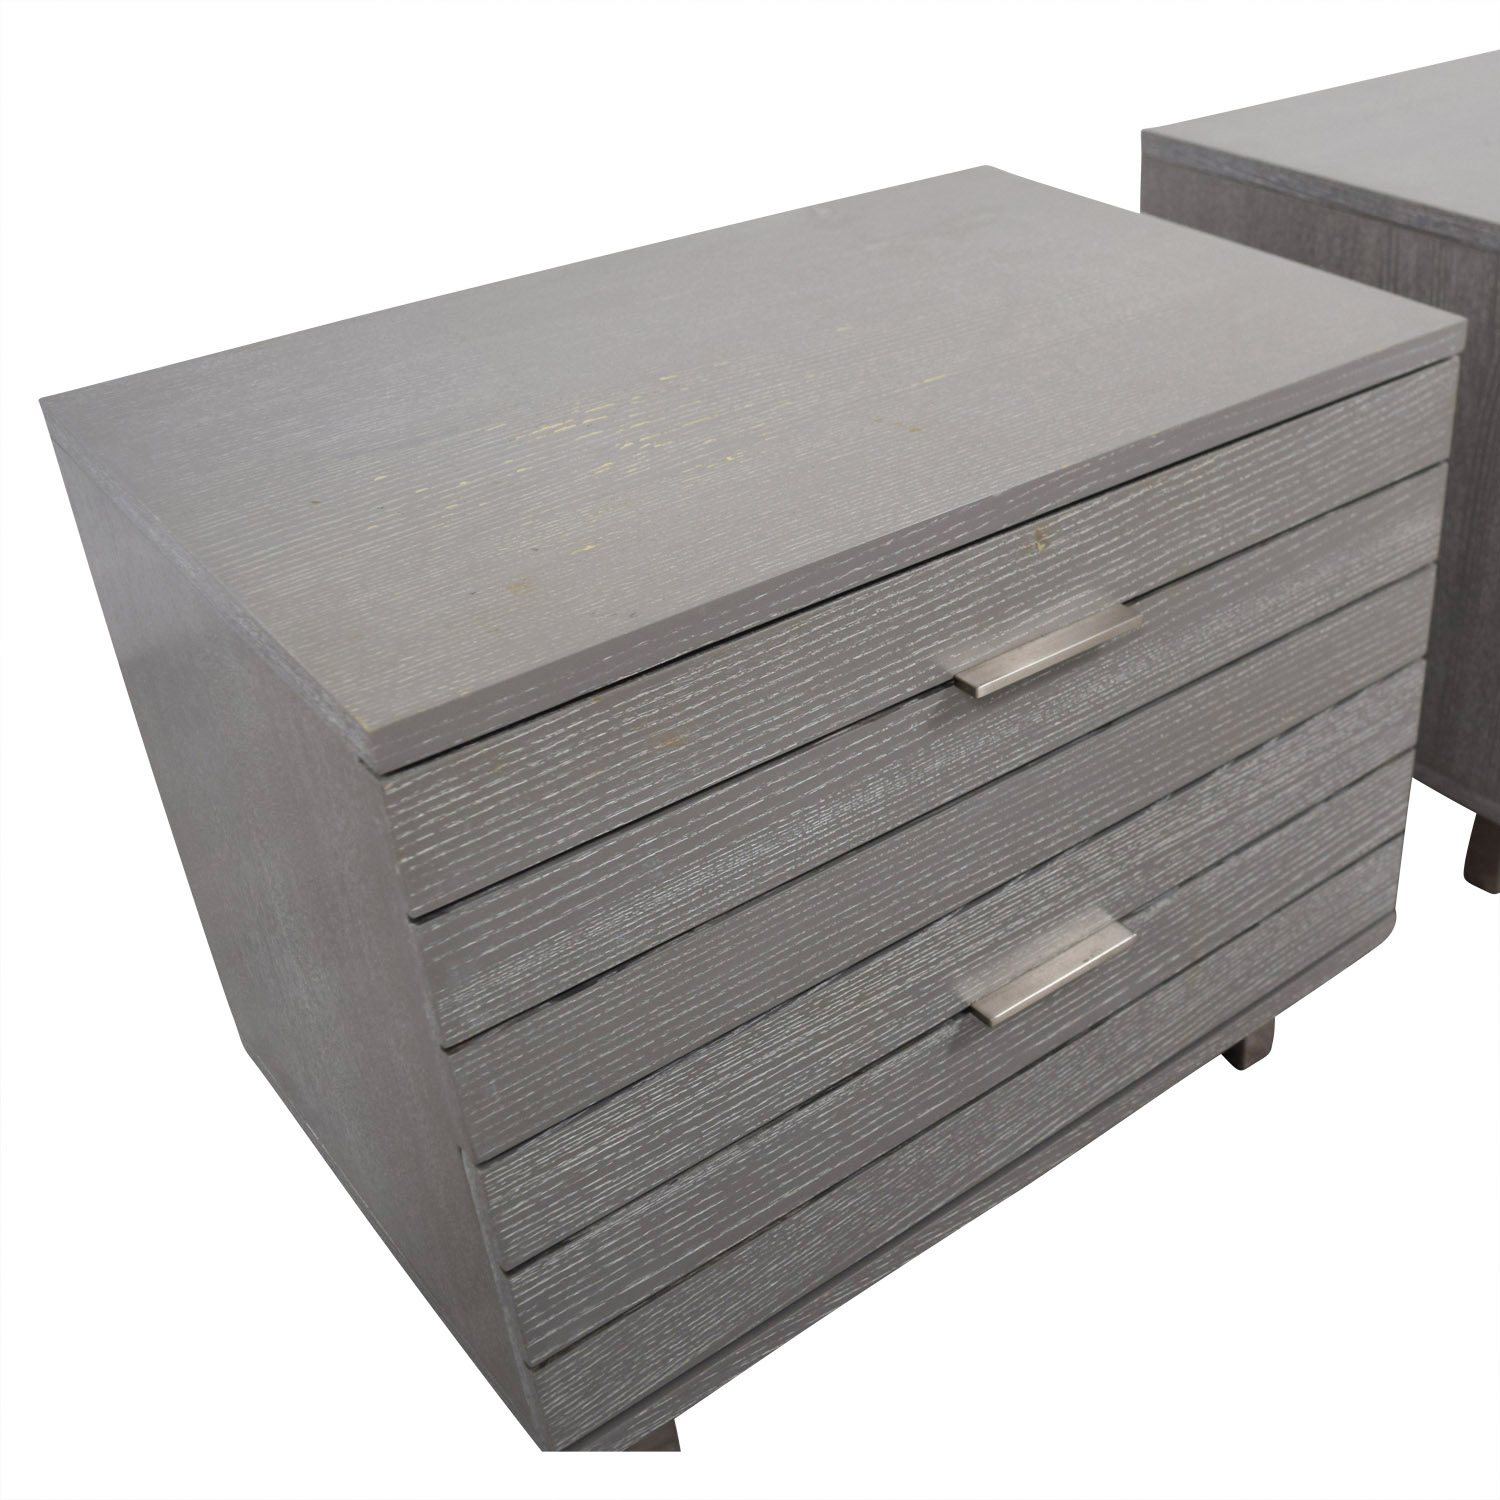 CB2 CB2 Grey Two-Drawer Night Stands dimensions